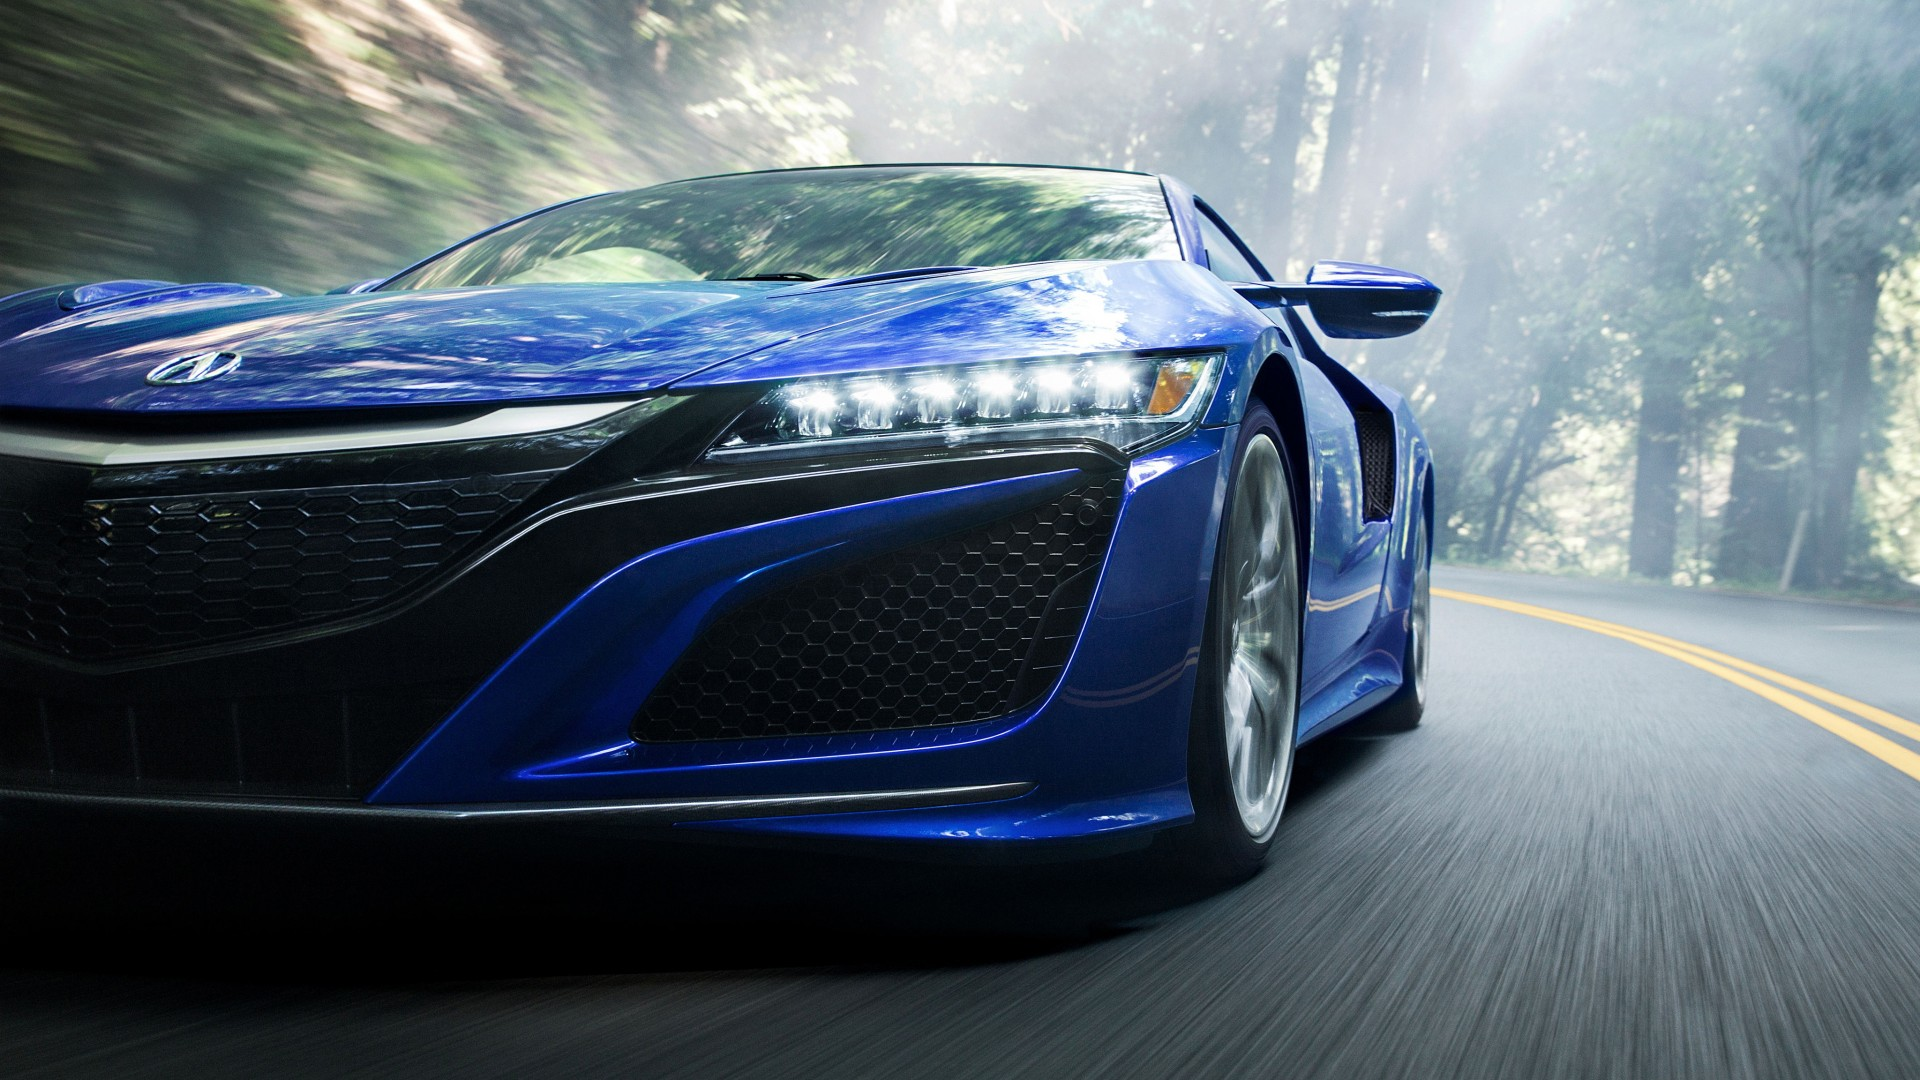 2017 Acura NSX 2 Wallpaper